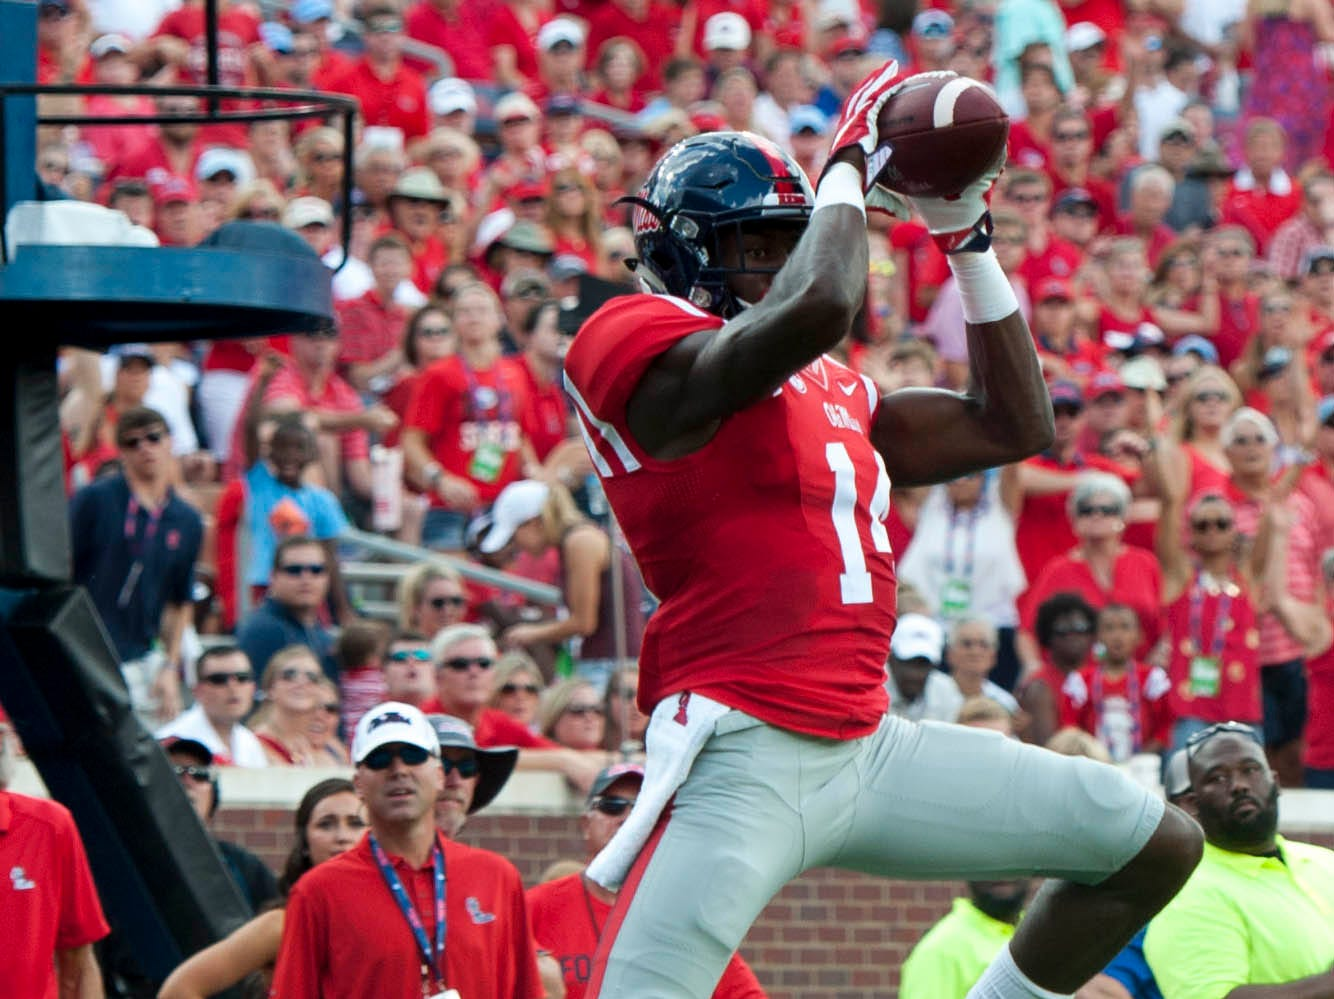 Mississippi Rebels wide receiver D.K. Metcalf (14) catches the ball during the first half thrown by quarterback Chad Kelly (not pictured) against the Wofford Terriers during the first half  at Vaught-Hemingway Stadium. Mississippi Rebels defeats Wofford Terriers 38-13.